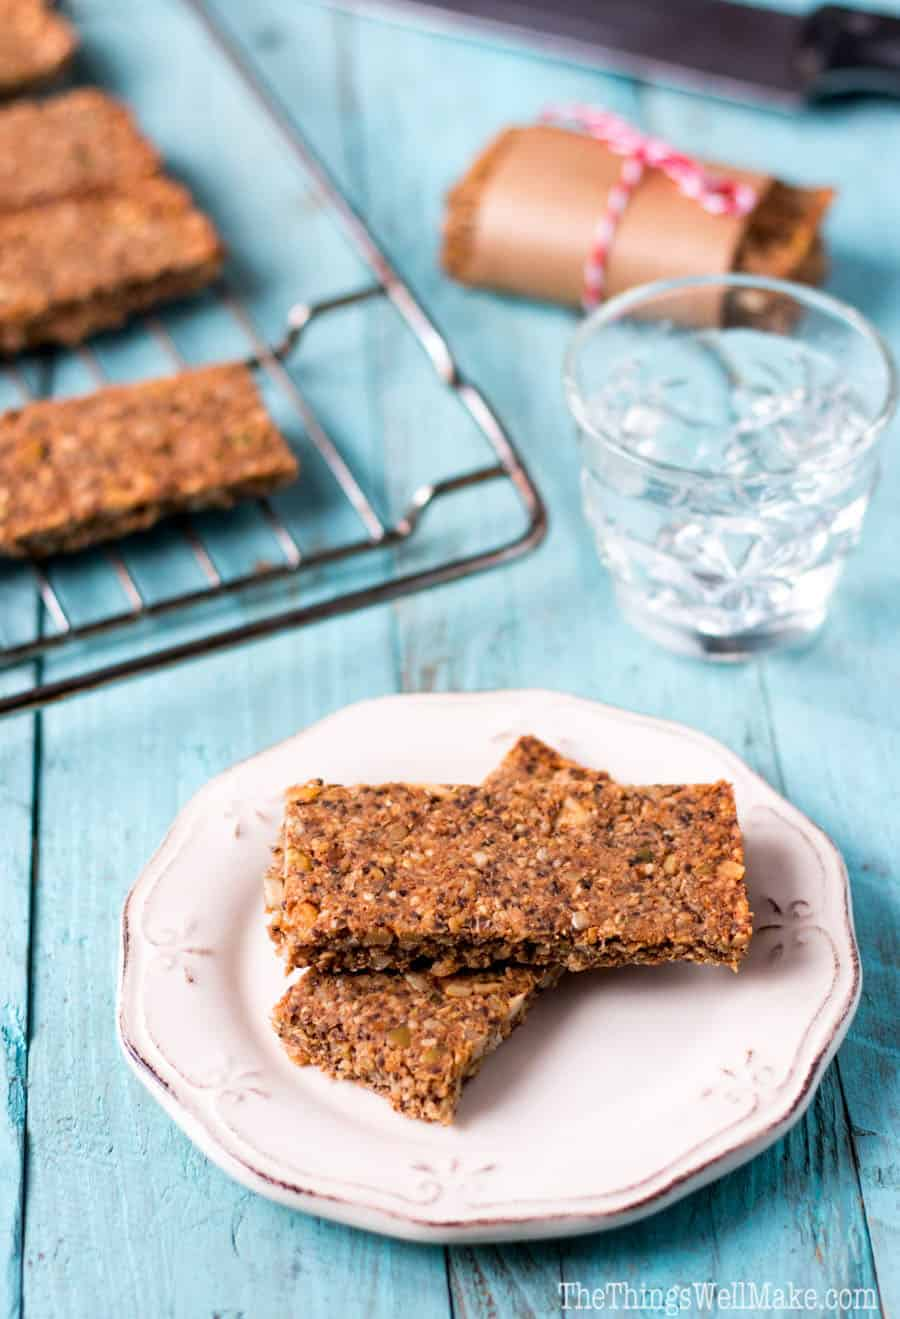 Homemade paleo granola bars on a plate in front of others on a cooling rack.